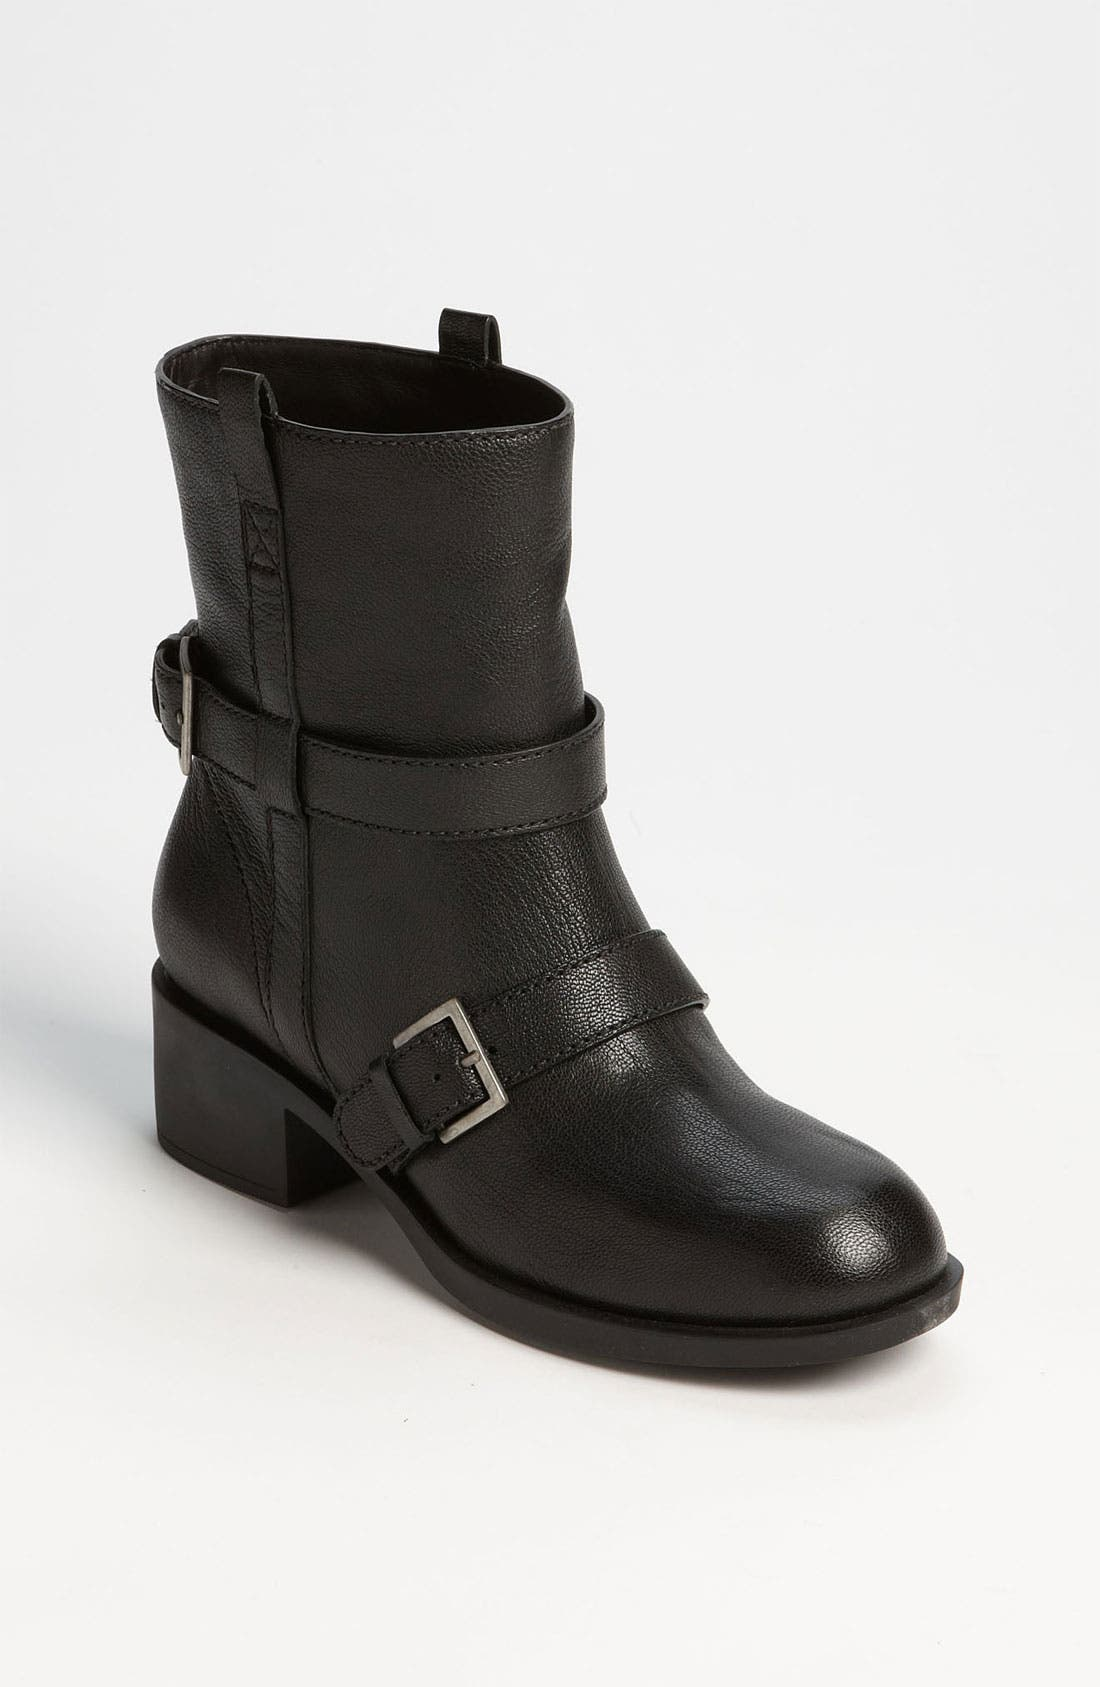 Alternate Image 1 Selected - Cole Haan 'Alix' Moto Boot